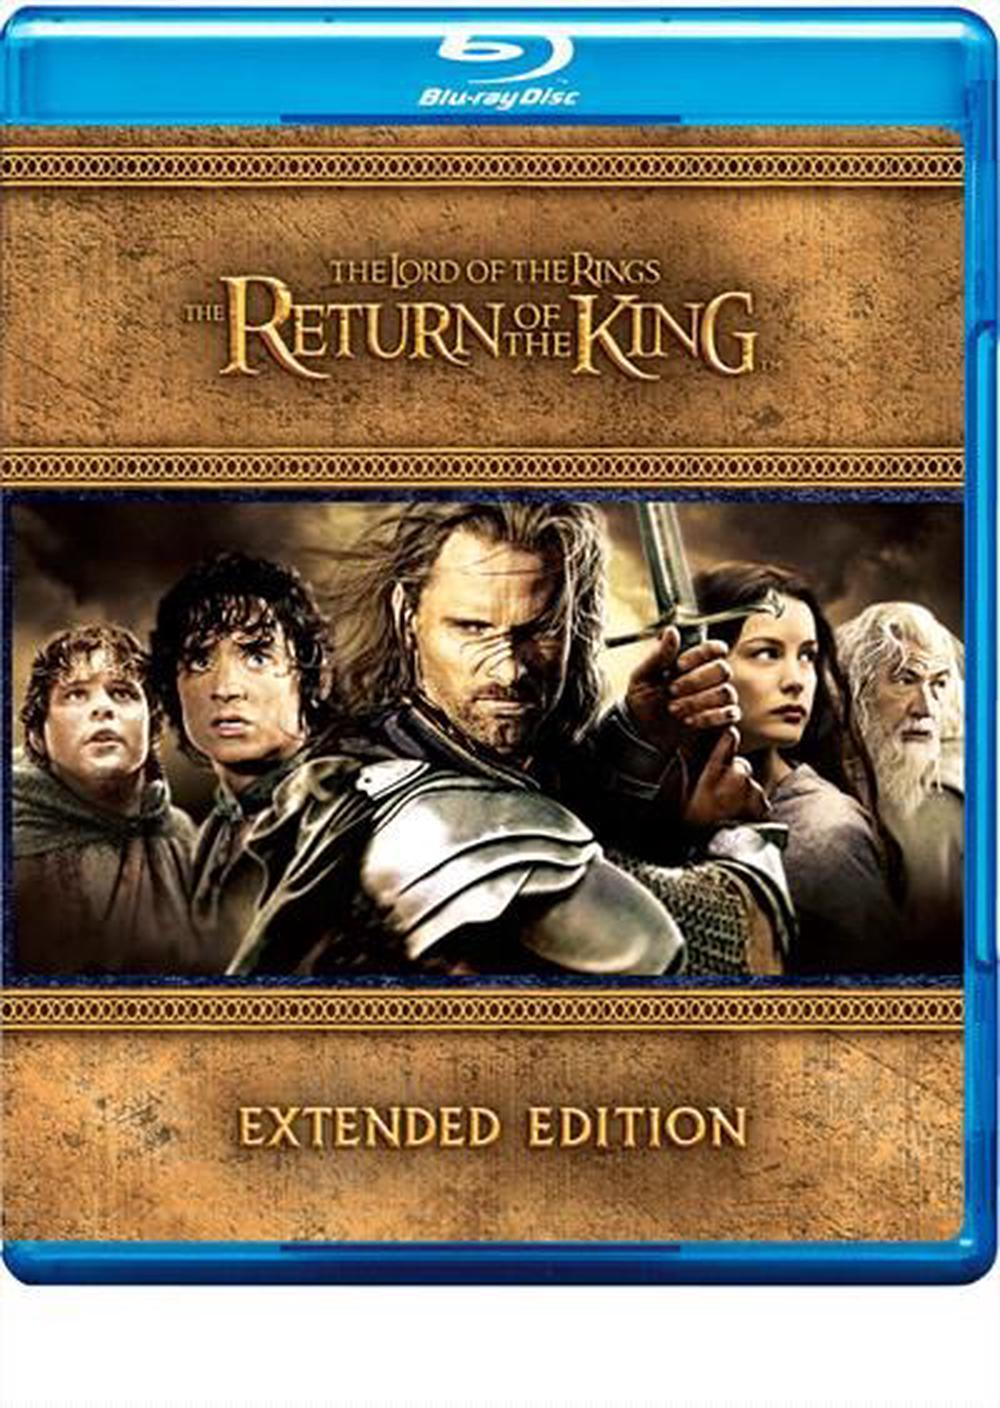 Amazon. Com: the lord of the rings: the return of the king (2-disc.